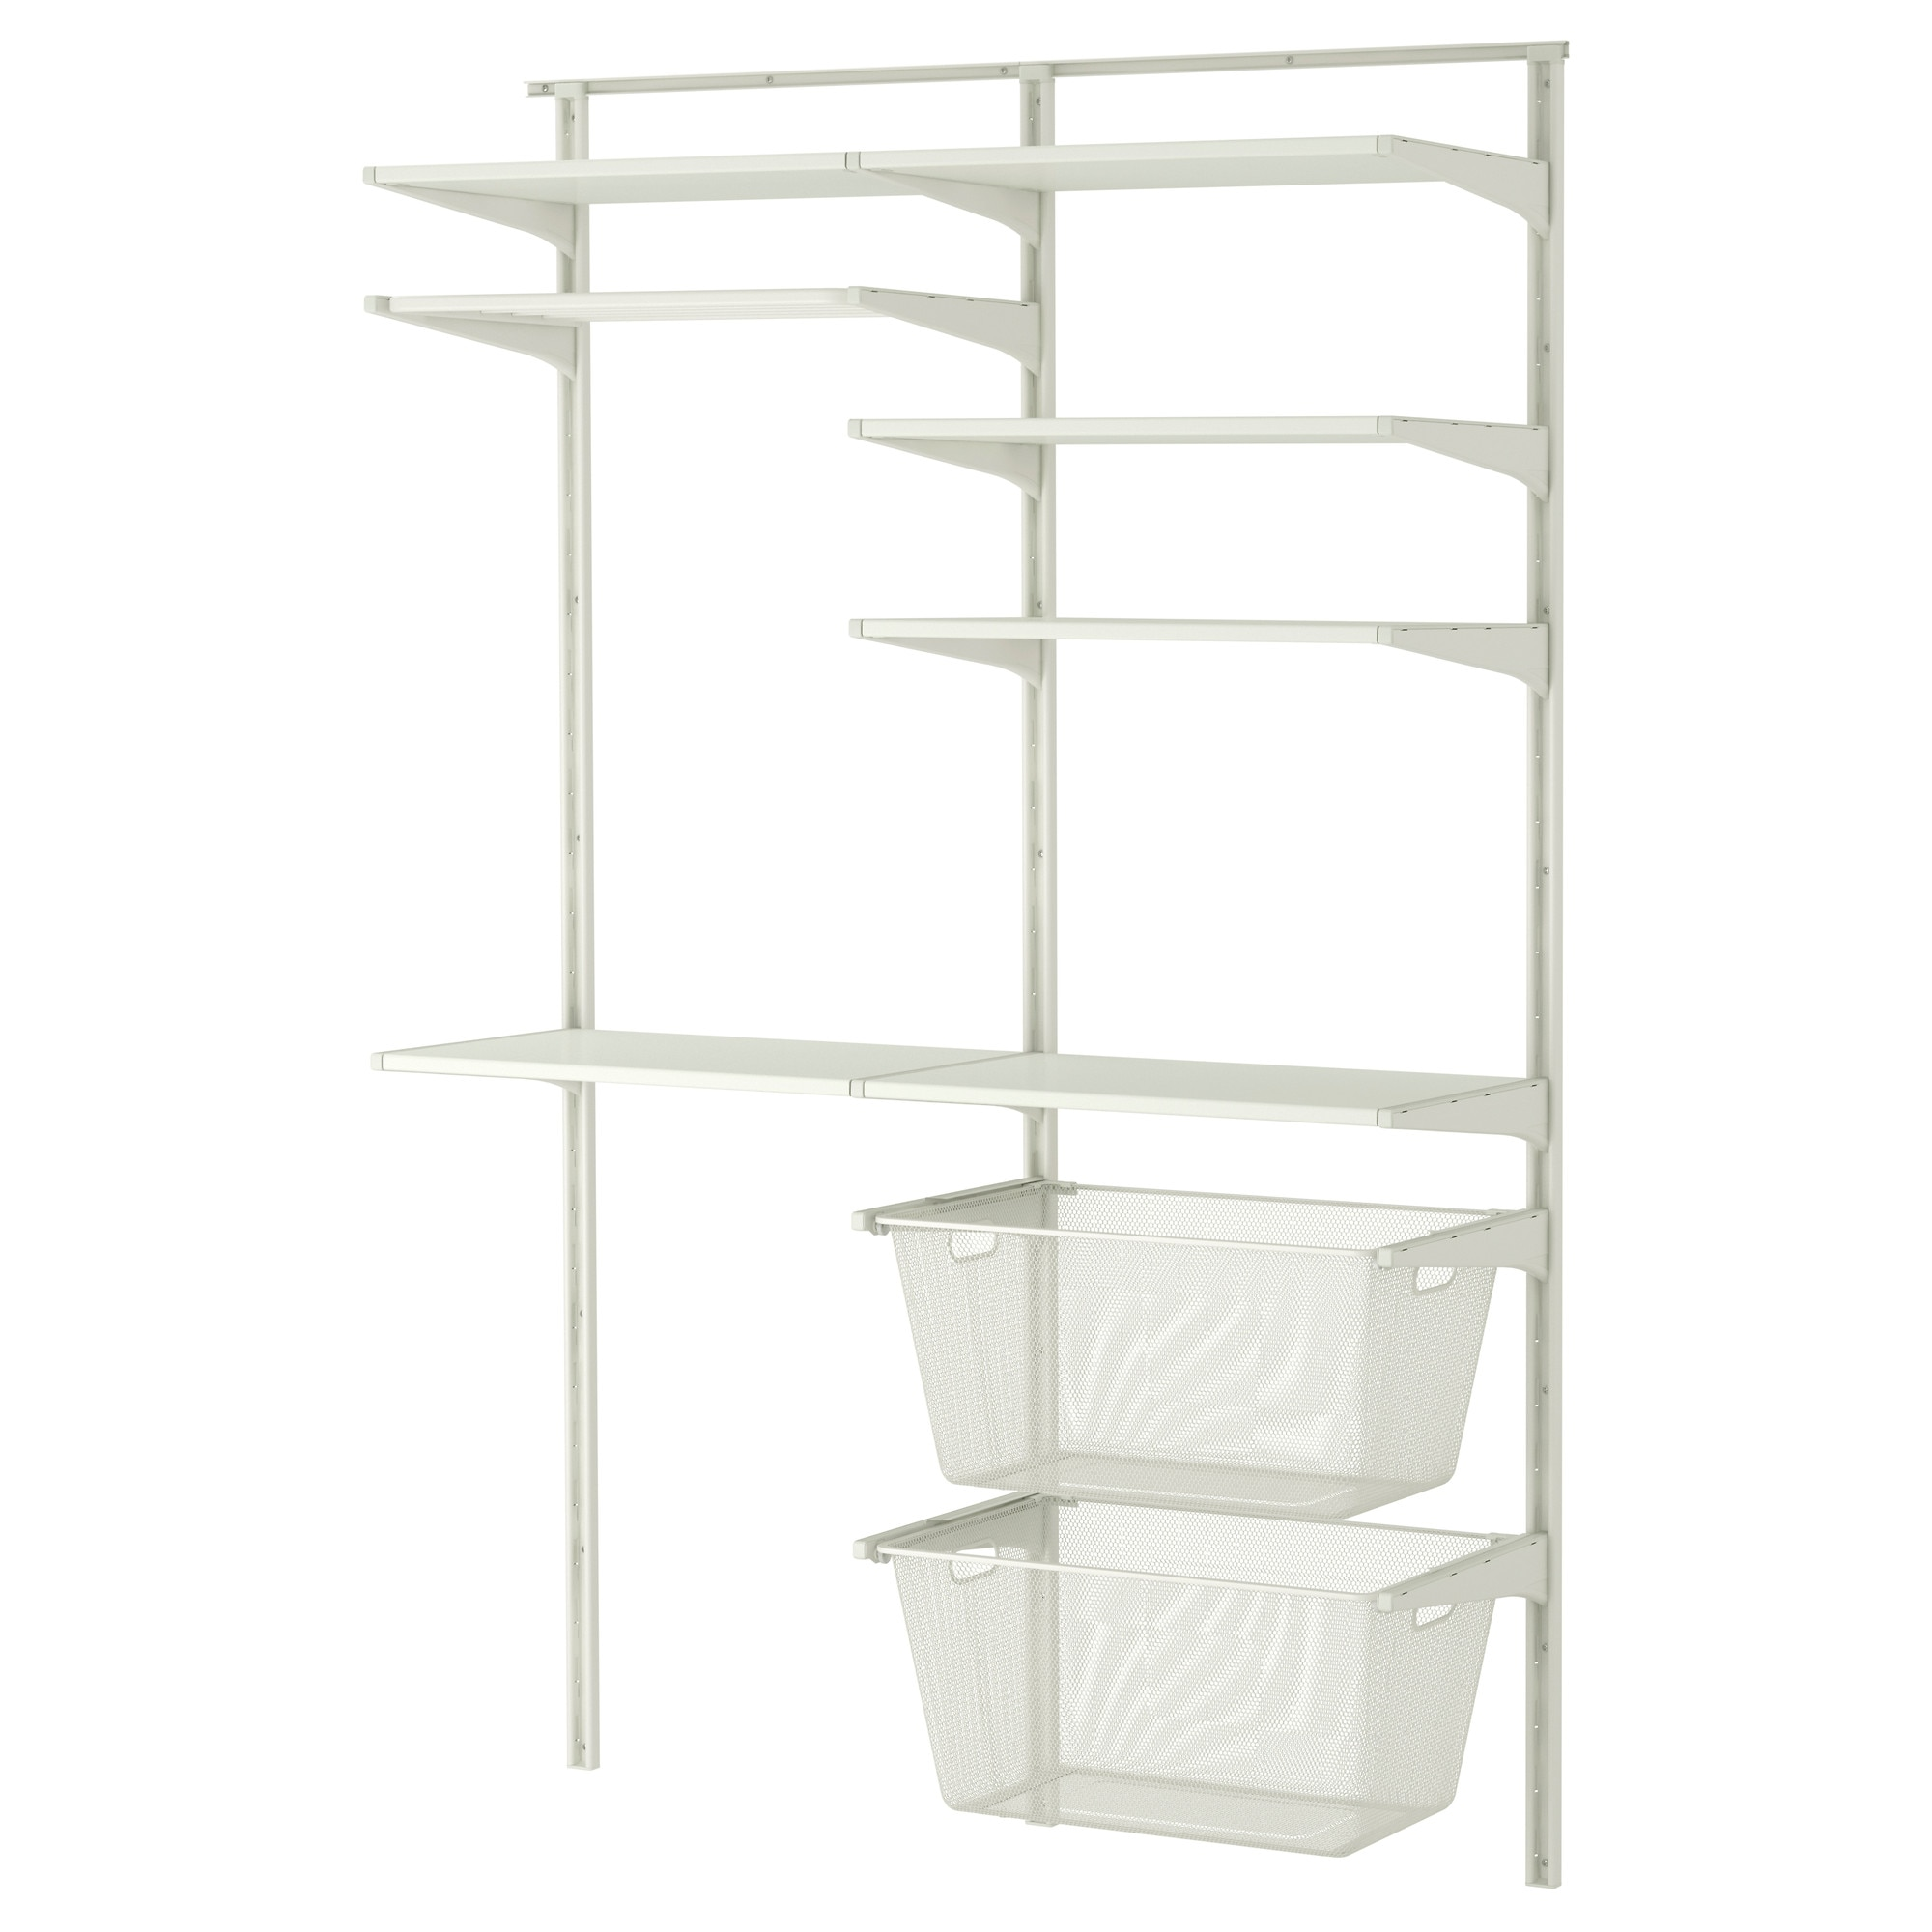 algot wall uprightshelvesdrying rack white width 52 depth algot white wall mounted storage